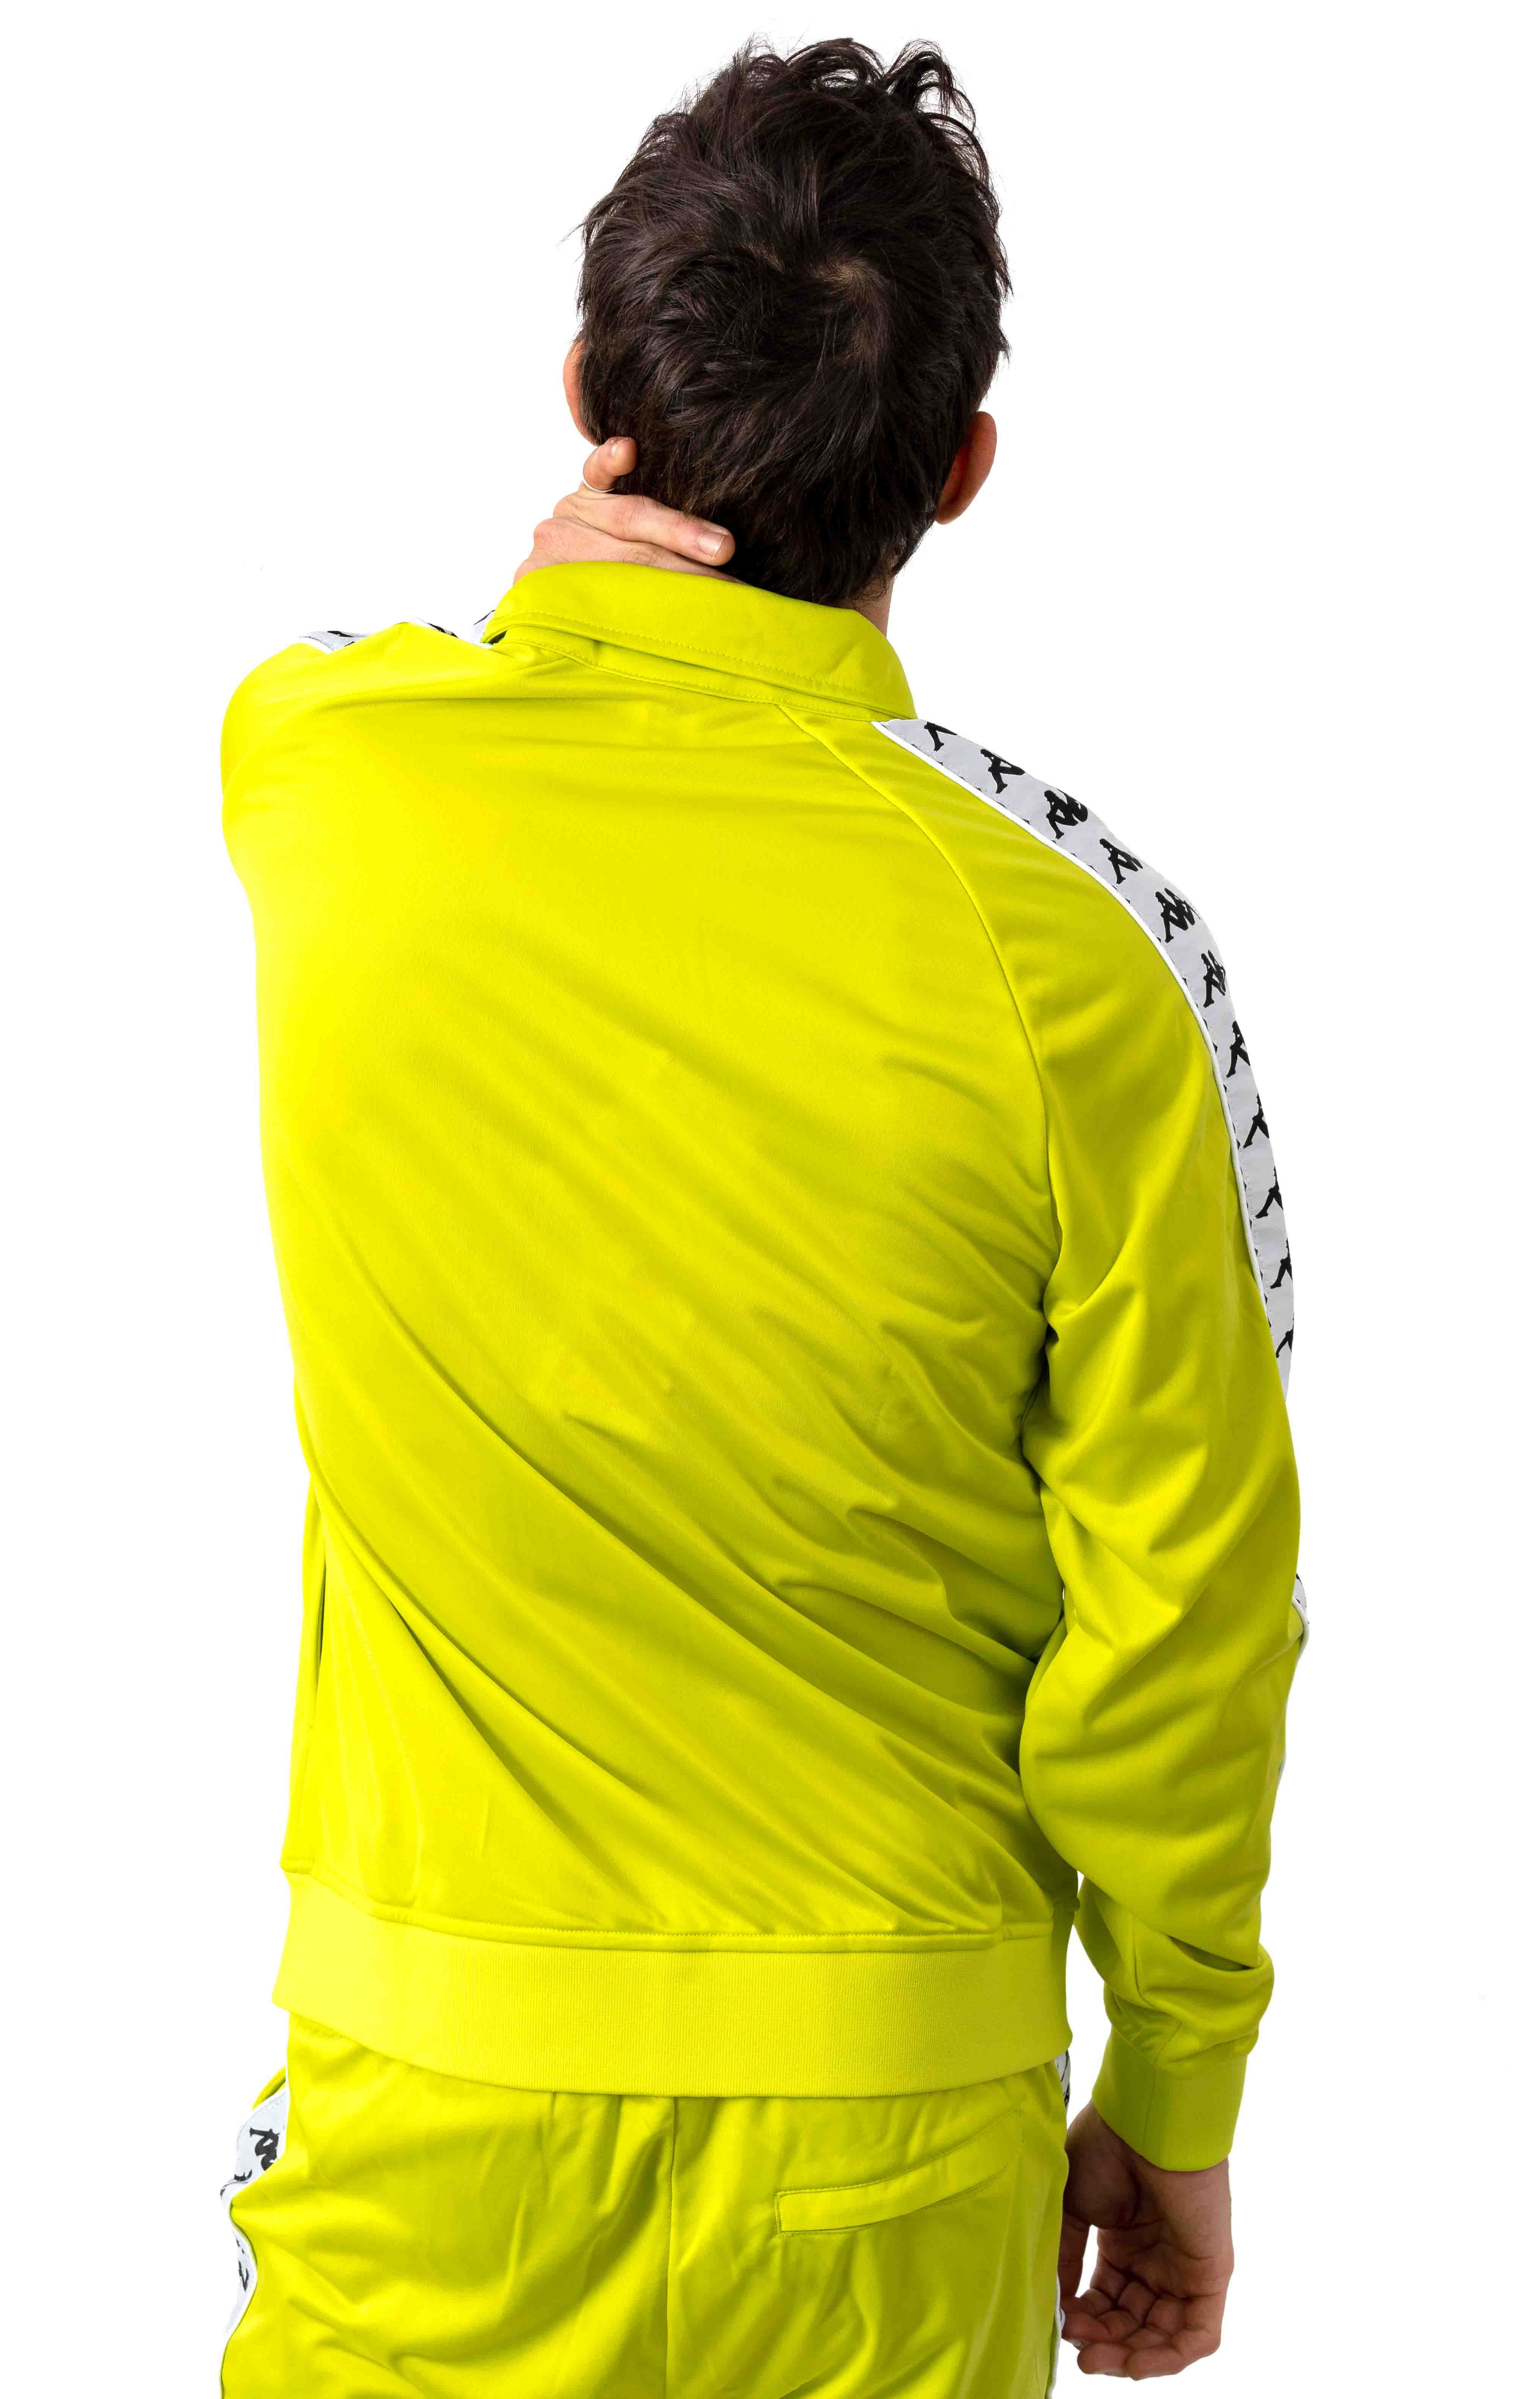 222 Banda Anniston Jacket - Green Lime 3